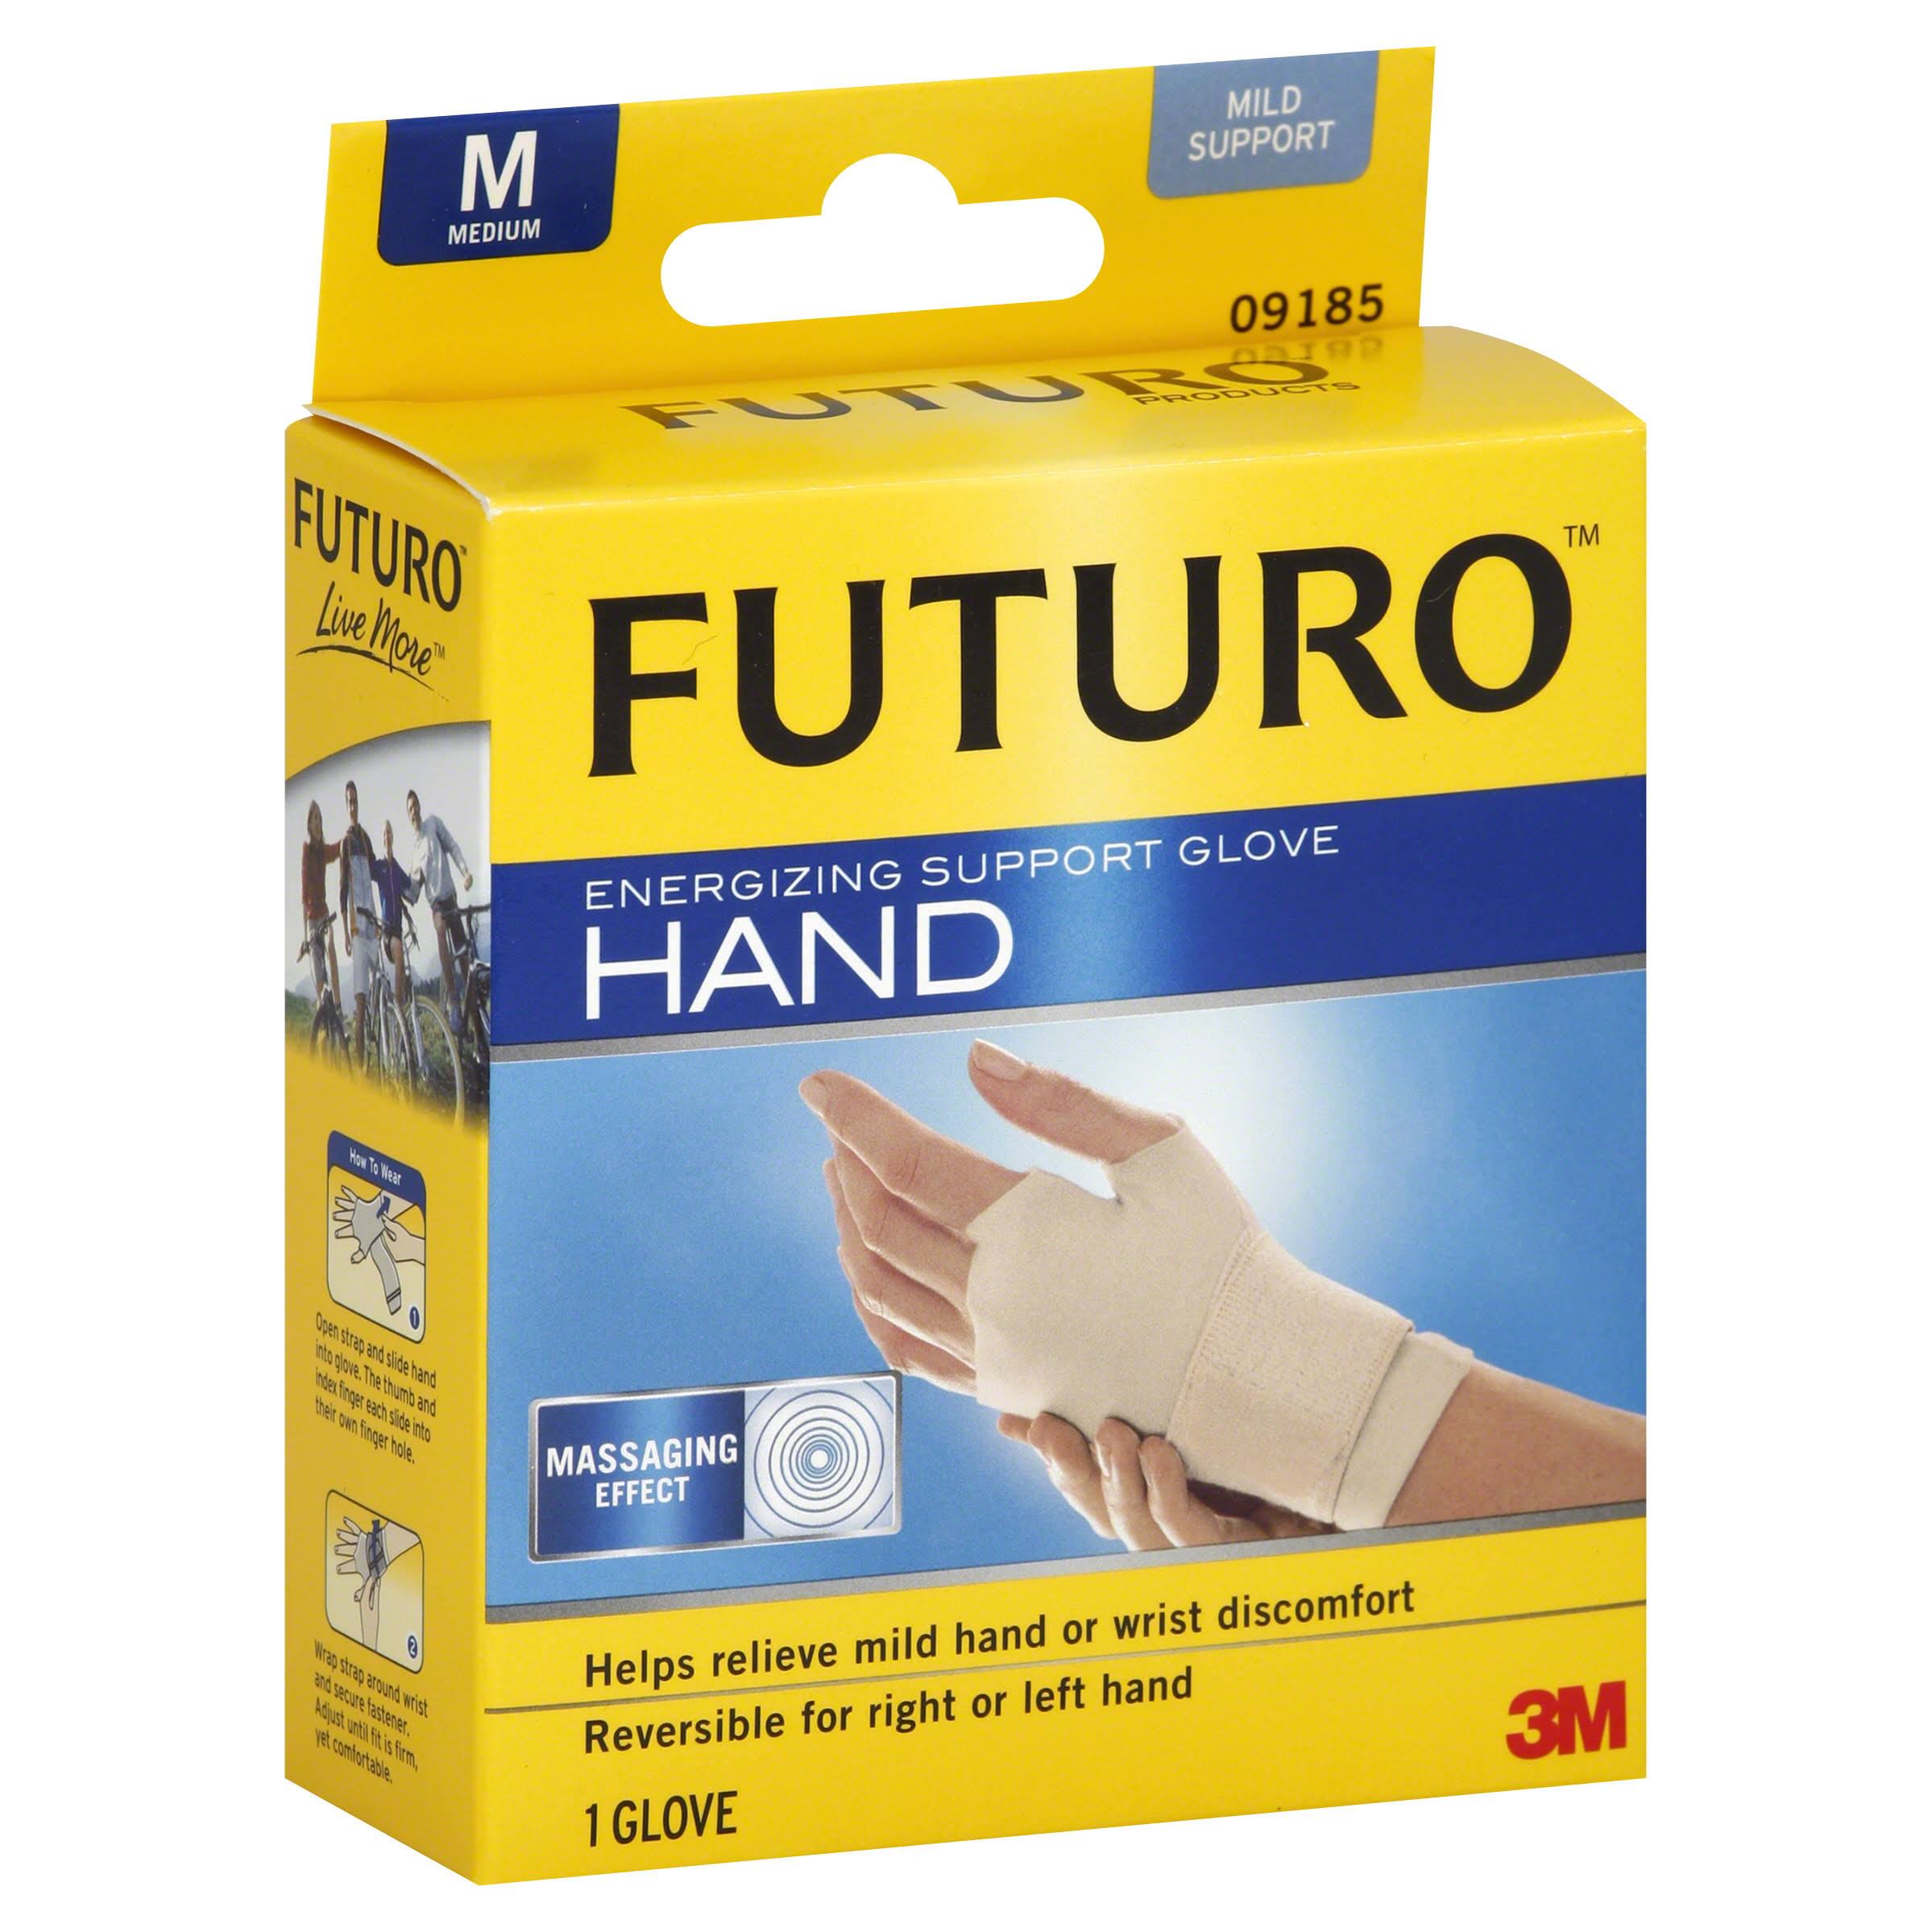 Futuro Hand Support Glove, Energizing, Mild Support, Medium